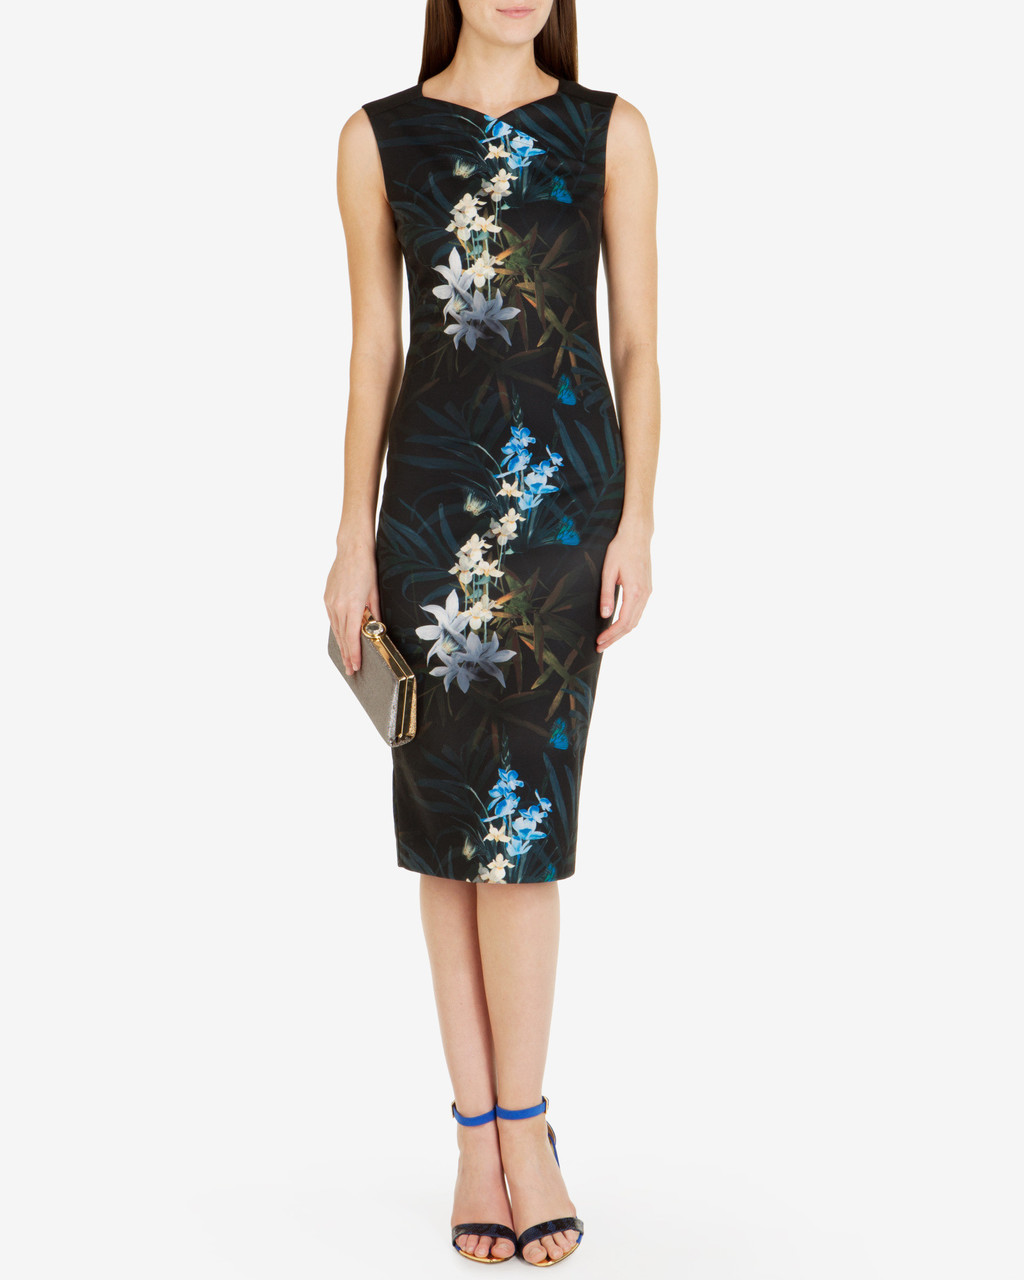 Twilight Floral Midi Dress Black - length: below the knee; fit: tight; sleeve style: sleeveless; style: bodycon; secondary colour: diva blue; predominant colour: black; occasions: evening; fibres: polyester/polyamide - stretch; neckline: crew; sleeve length: sleeveless; texture group: jersey - clingy; pattern type: fabric; pattern: florals; multicoloured: multicoloured; season: a/w 2016